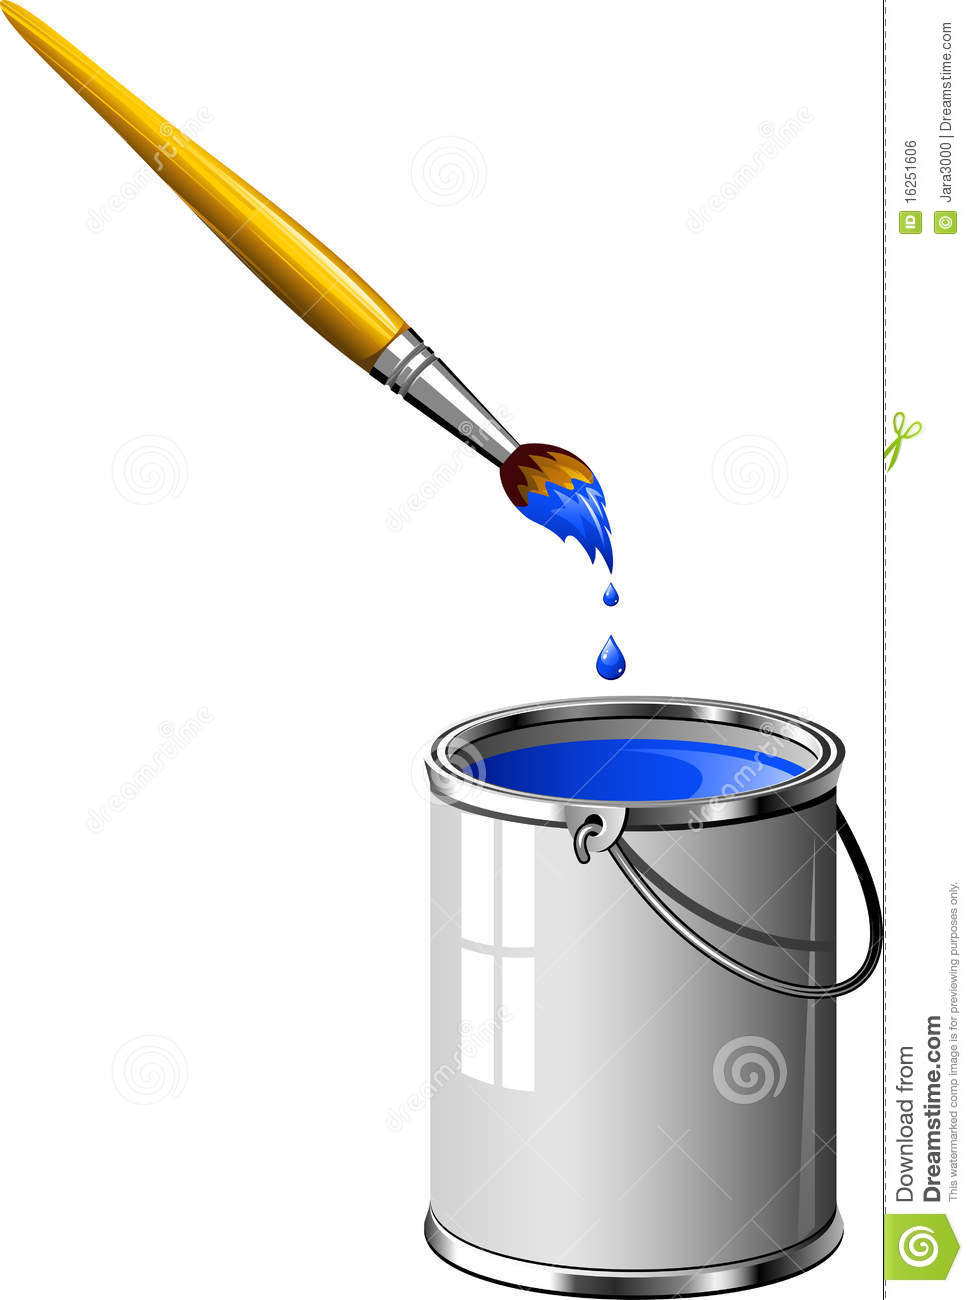 Darkbluepaintbrush: Bucket Of Blue Paint And A Brush Royalty Free Stock Image